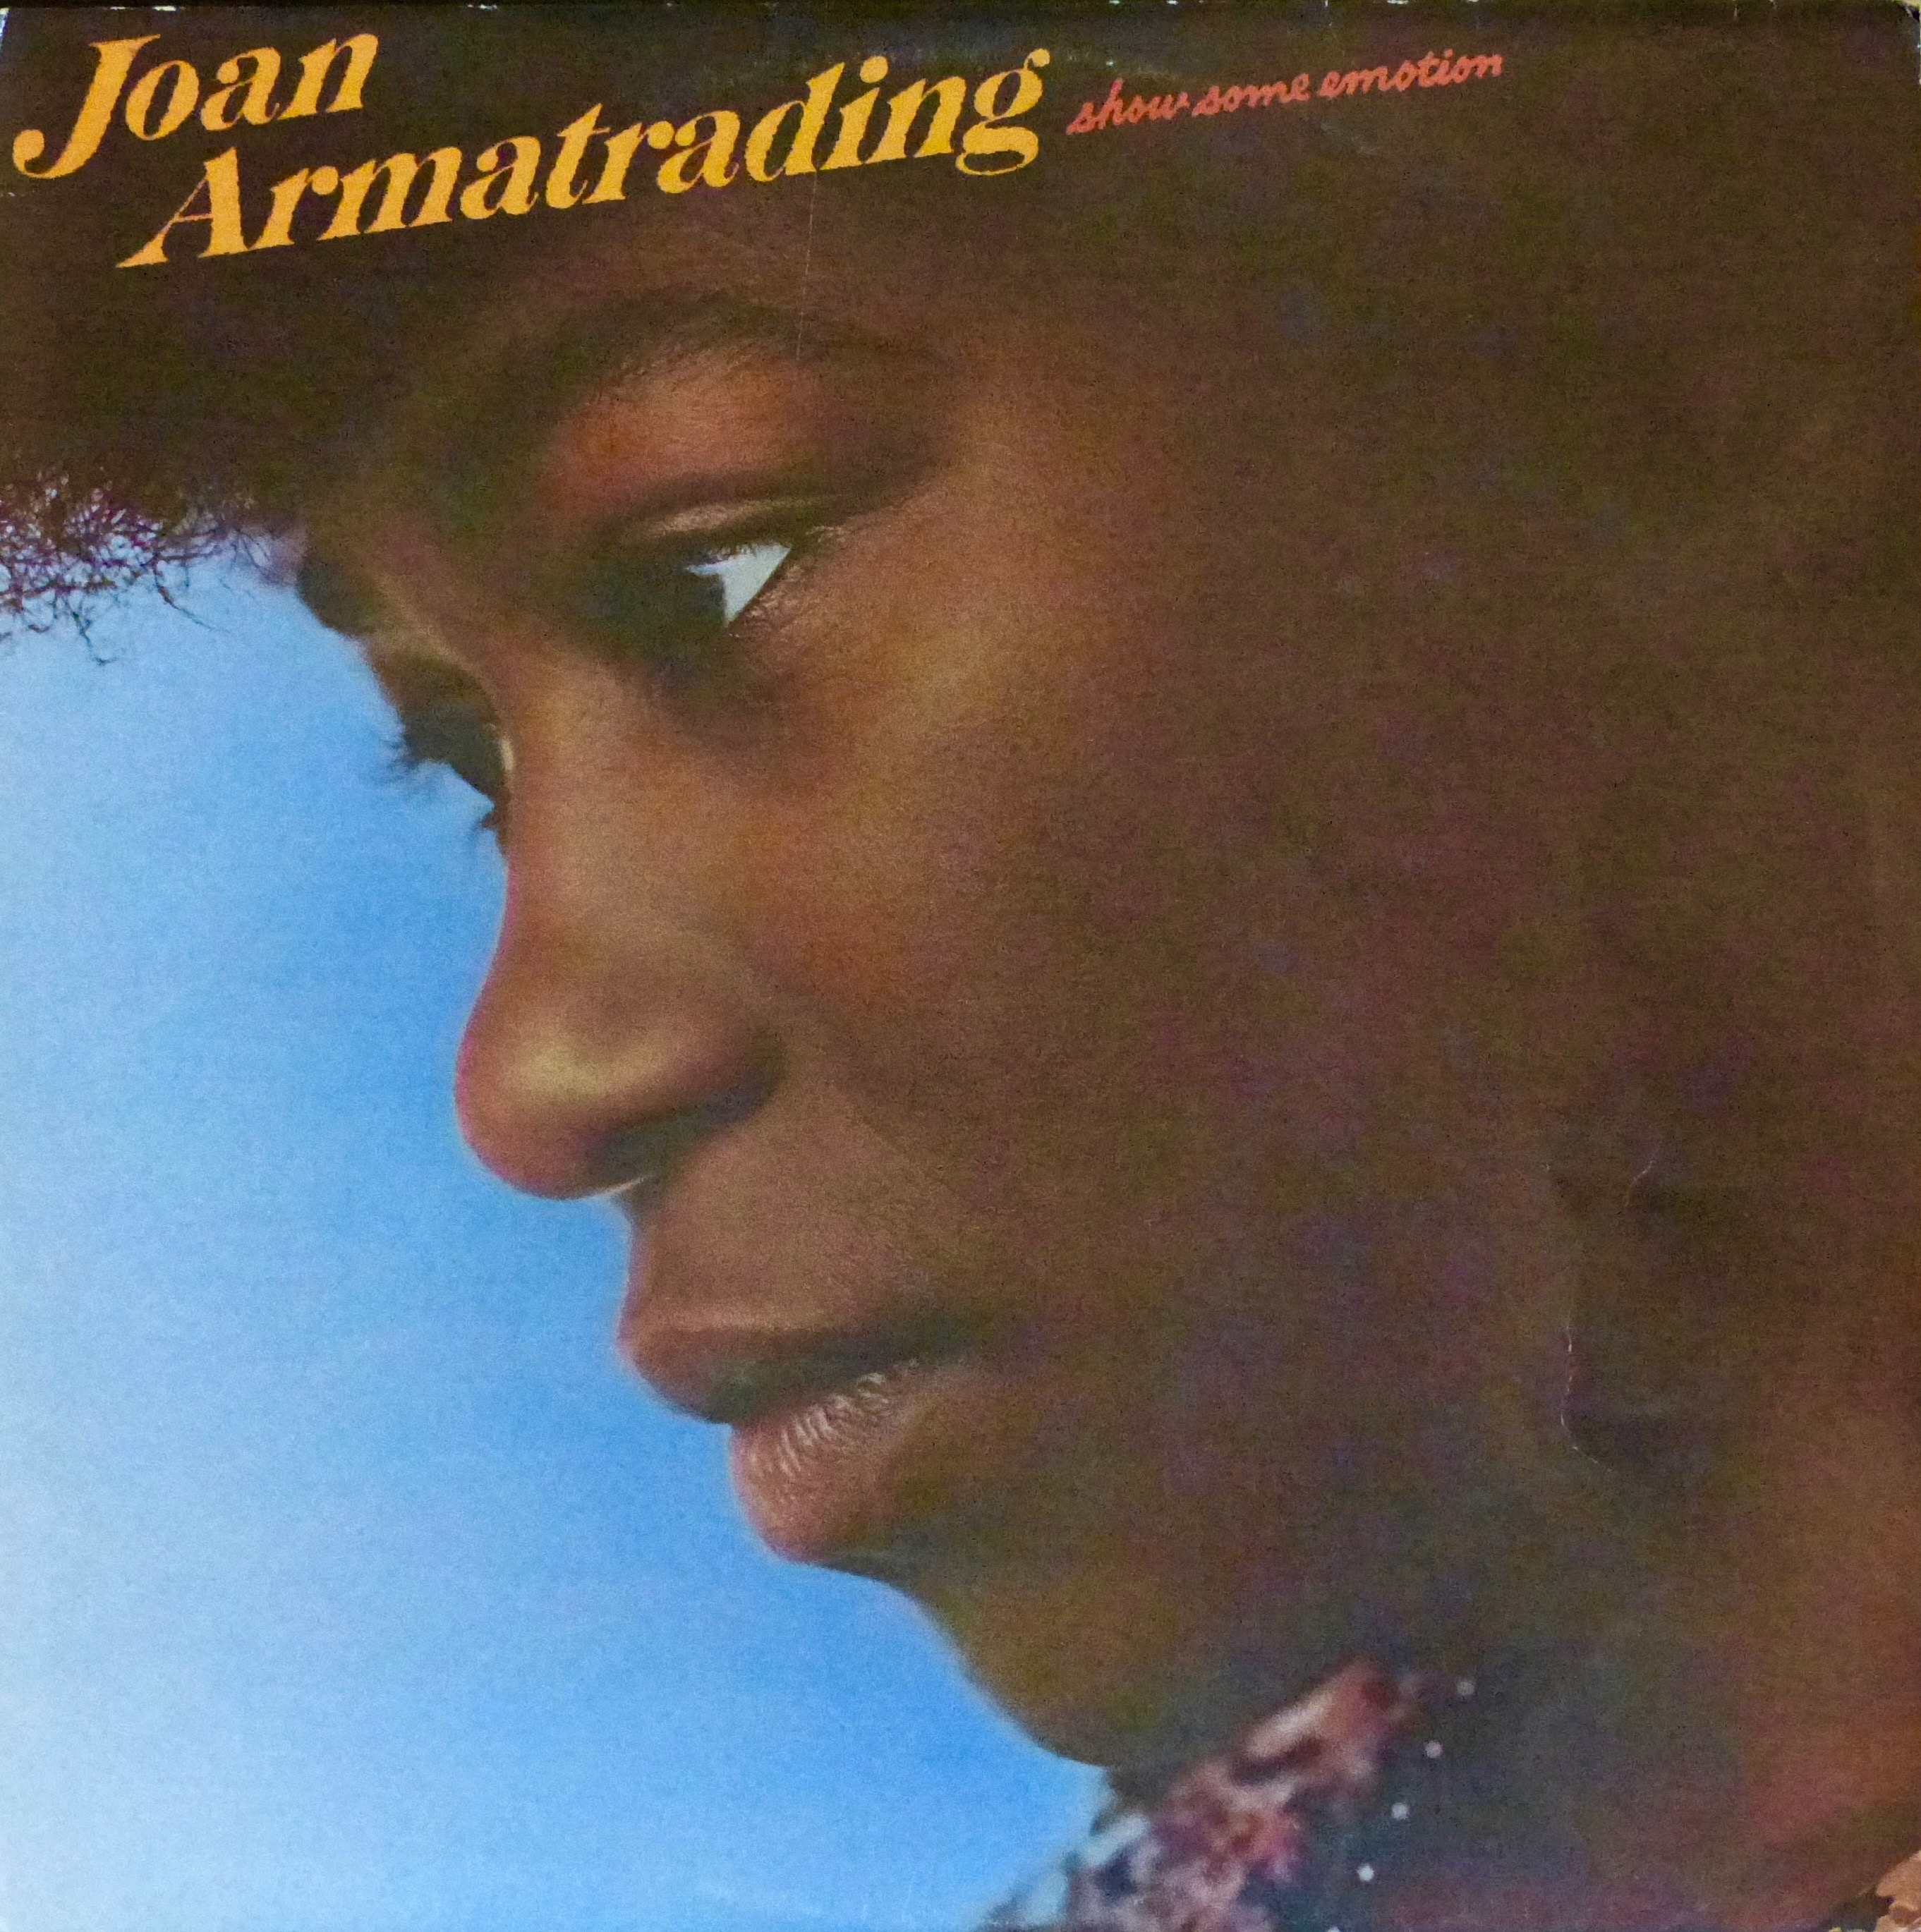 Show Some Emotion Joan Armatrading Sound Distractions